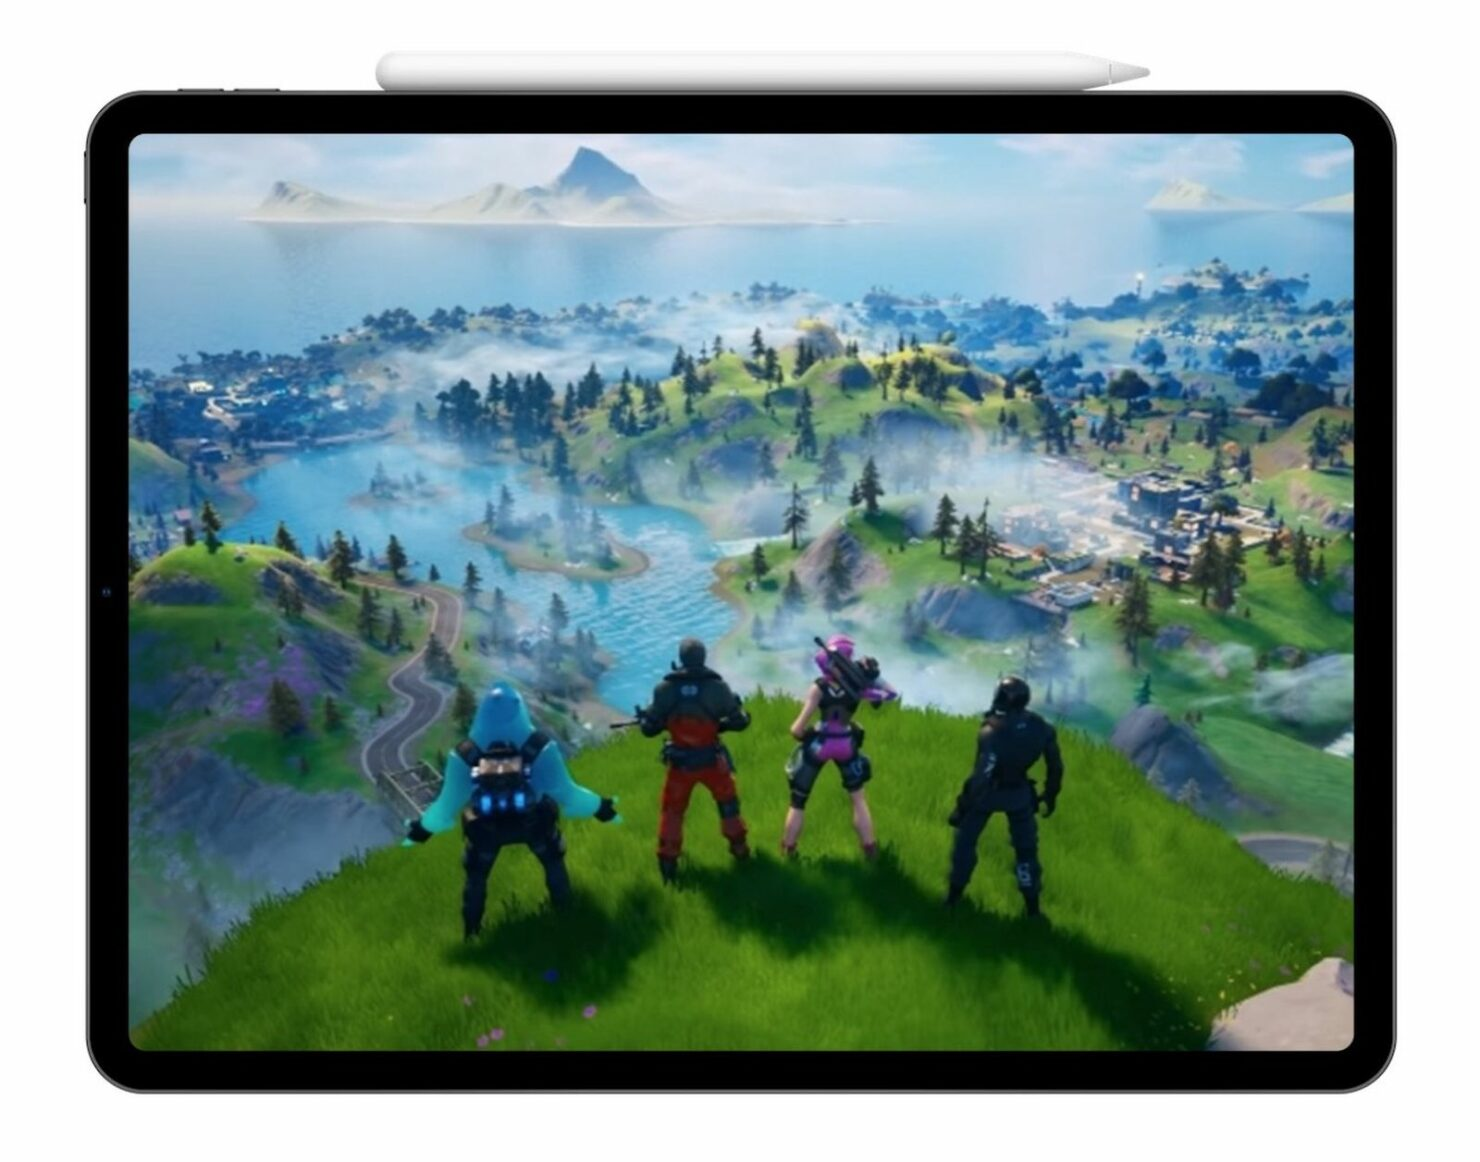 People are Already Selling iPads on eBay with Fortnite Installed at Insane Prices